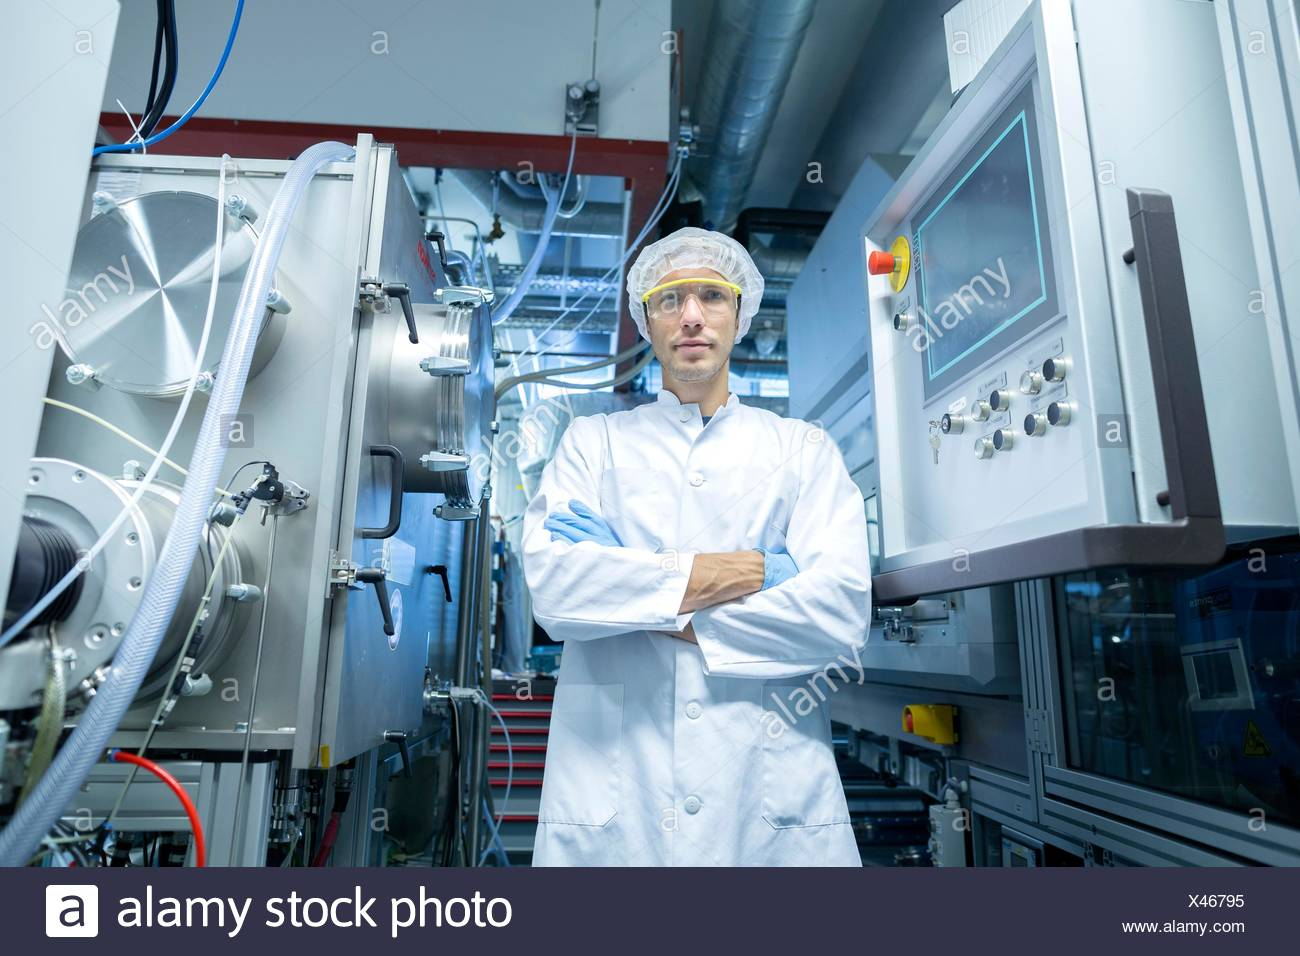 Portrait of male scientist with arms folded in lab cleanroom - Stock Image